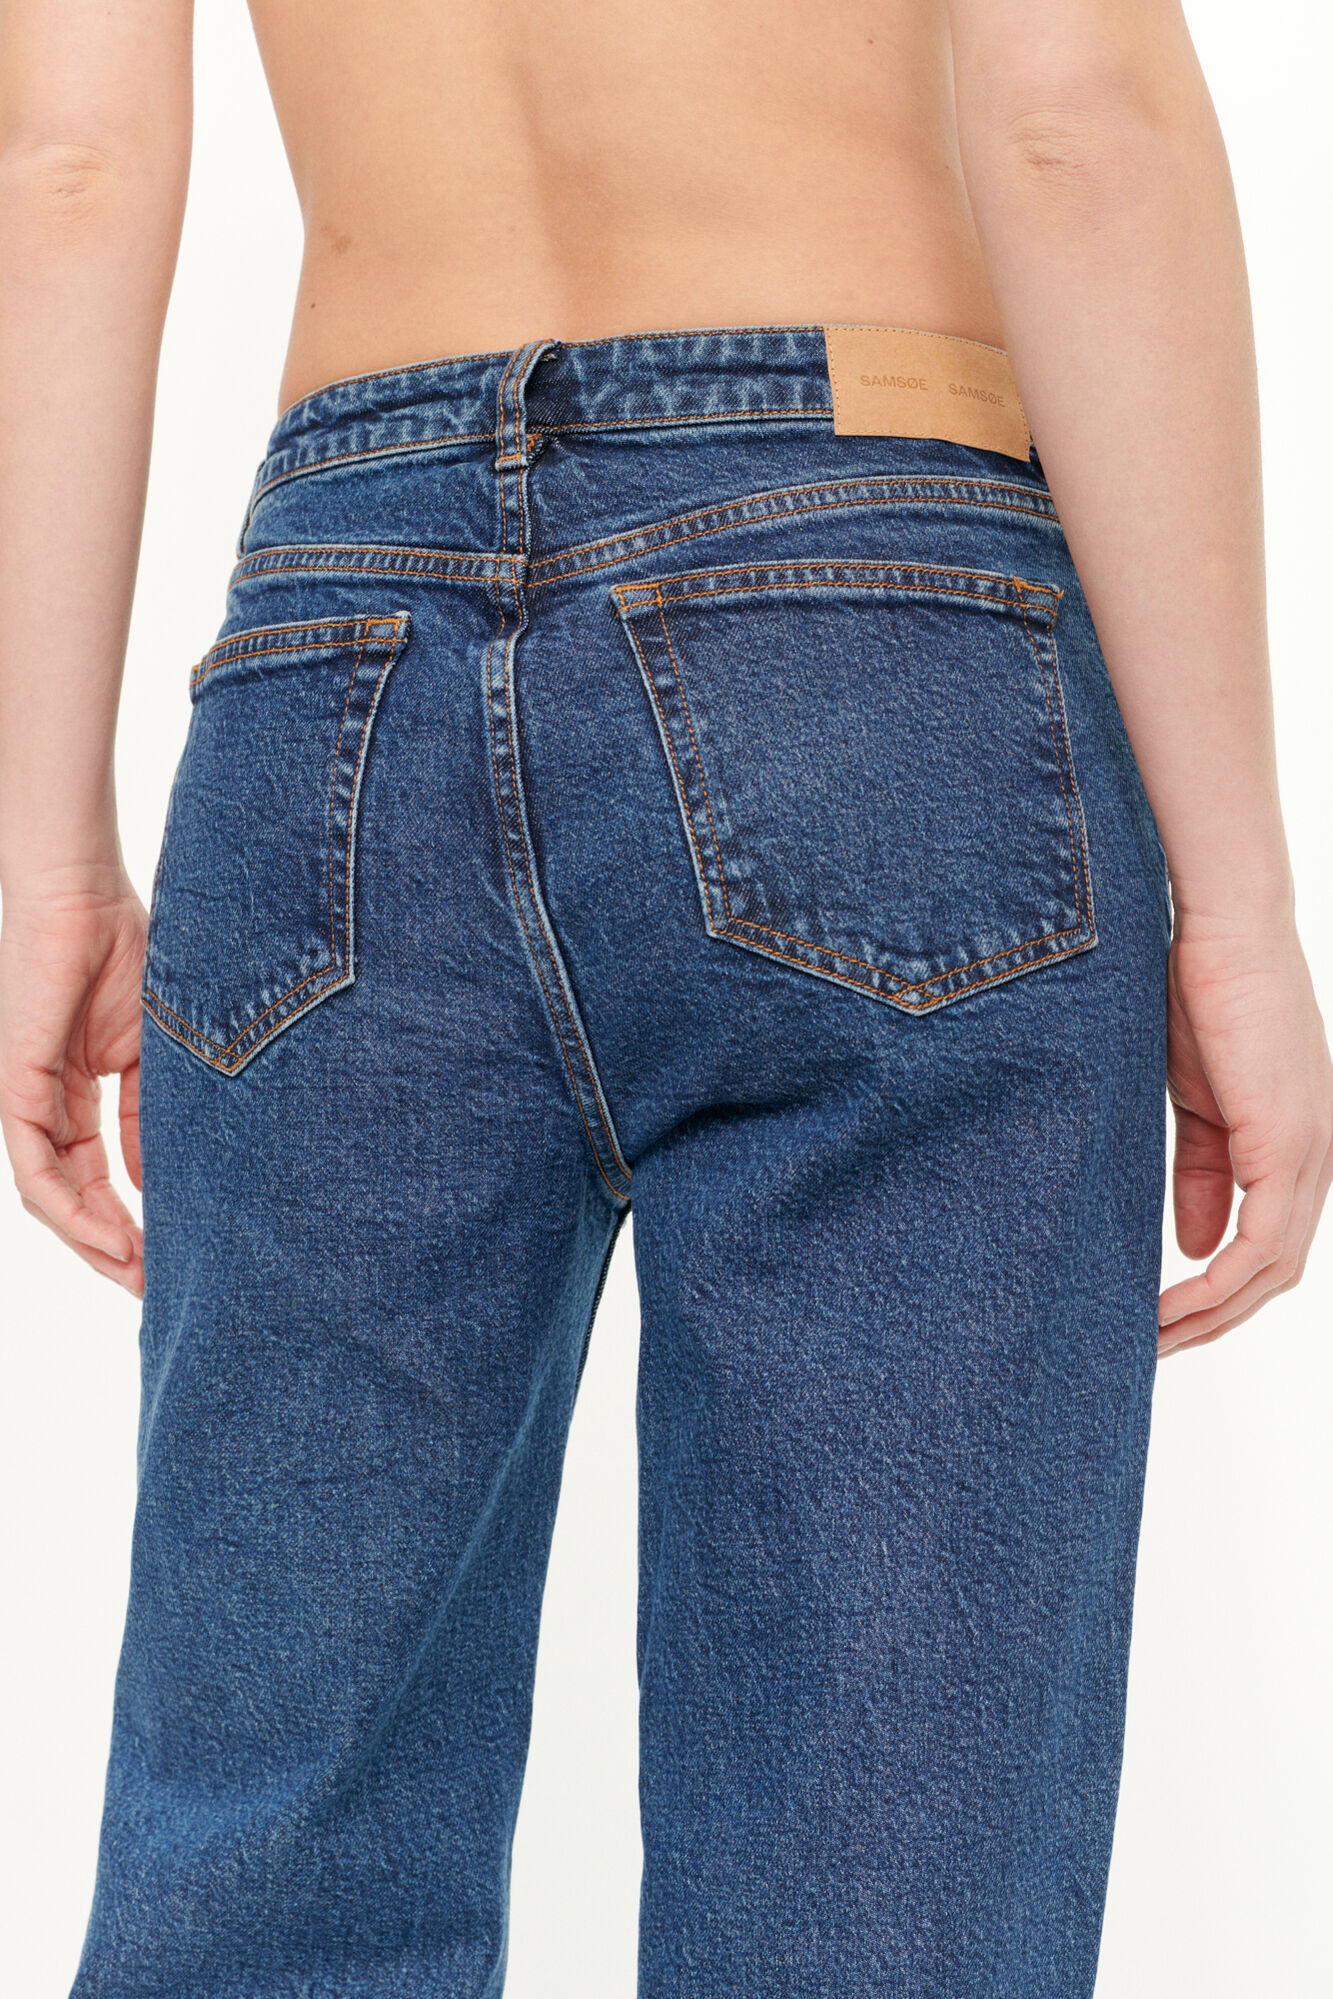 Marianne jeans 11358